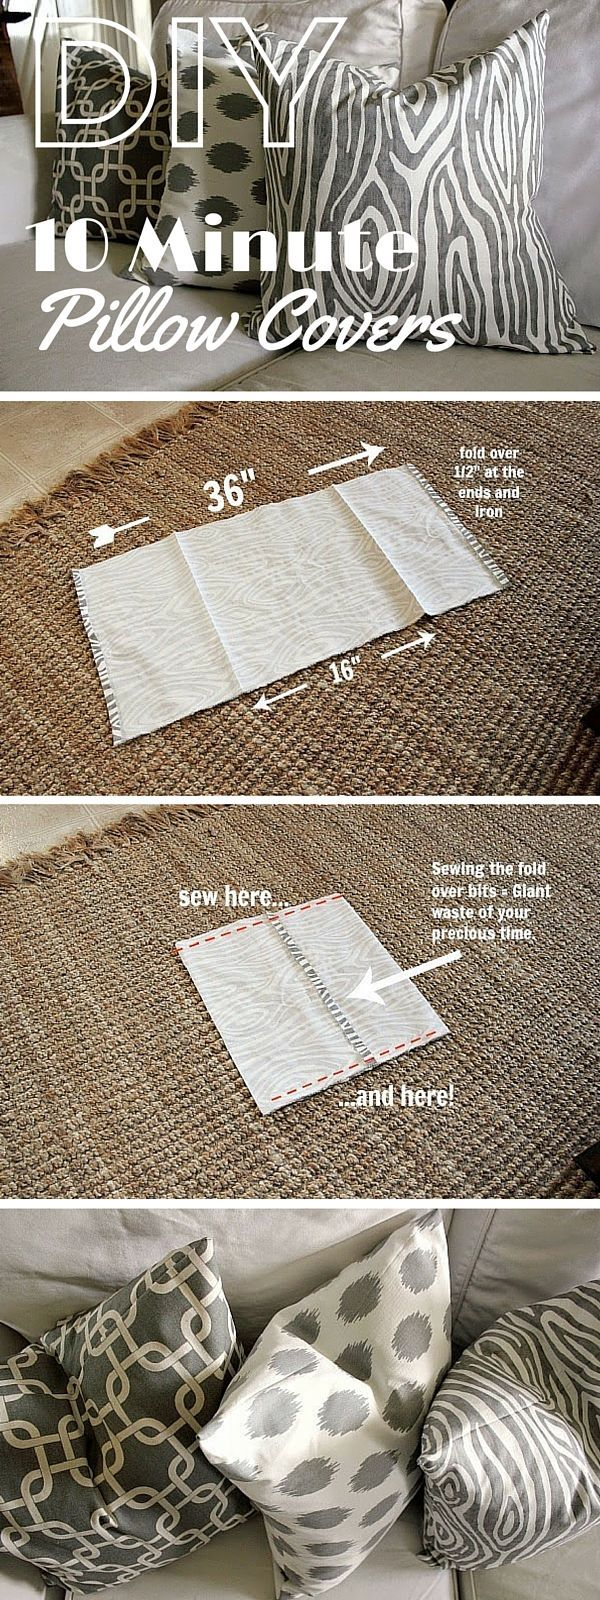 best 25 diy crafts home ideas on pinterest home crafts diy 12 clever diy home decor ideas for a quick fix